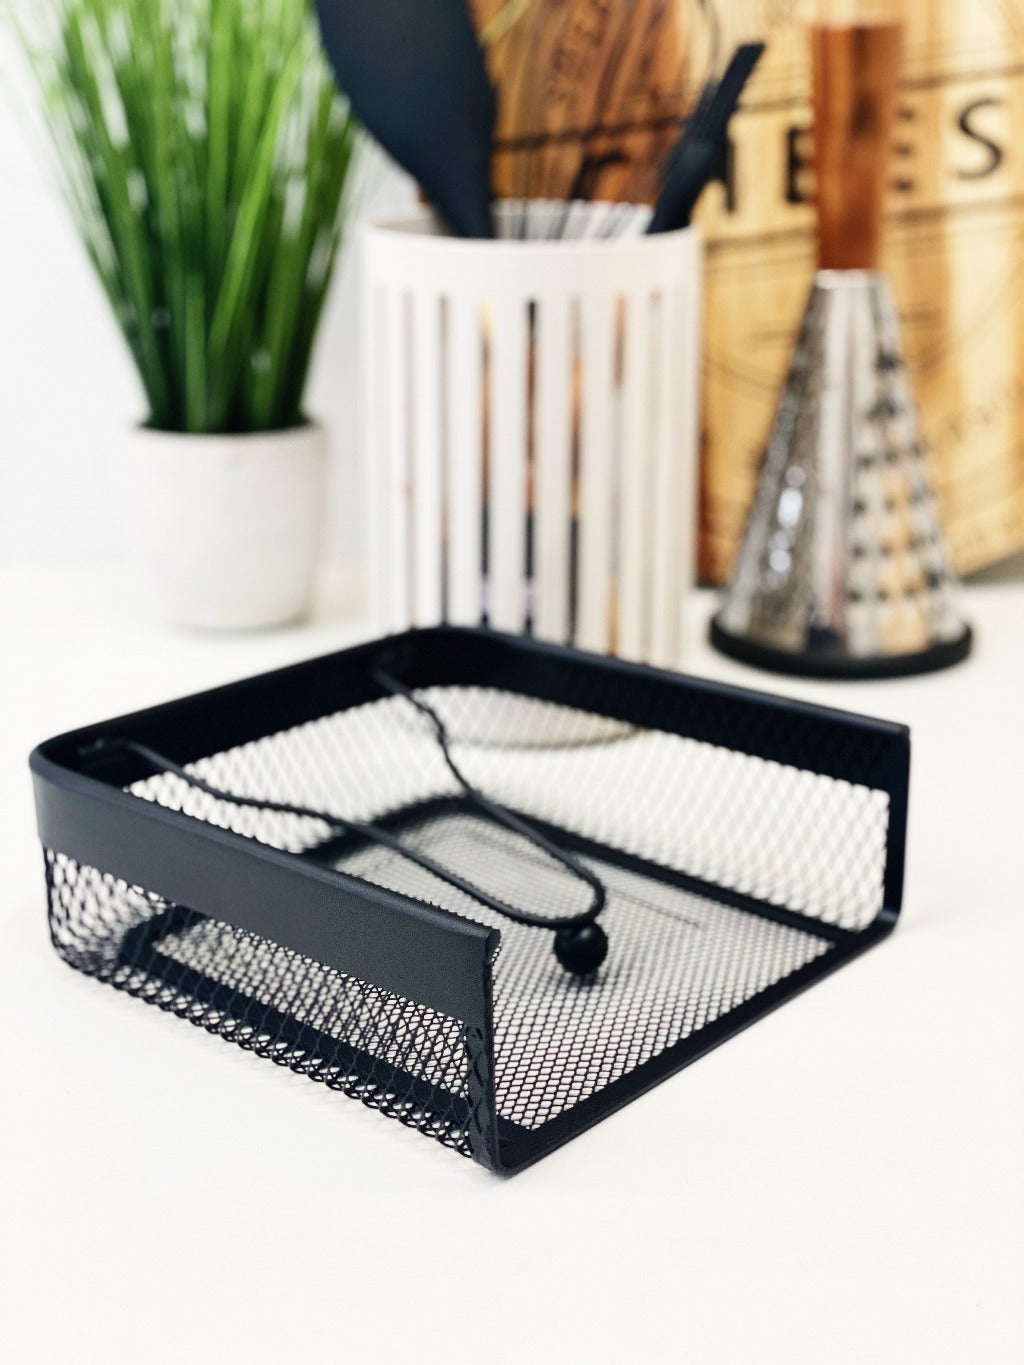 Classica | MESH Napkin Holder | Black | 18.5 x 16 x 7.5cm| Bliss Gifts & Homewares | Unit 8, 259 Princes Hwy Ulladulla | South Coast NSW | Online Retail Gift & Homeware Shopping | 0427795959, 44541523